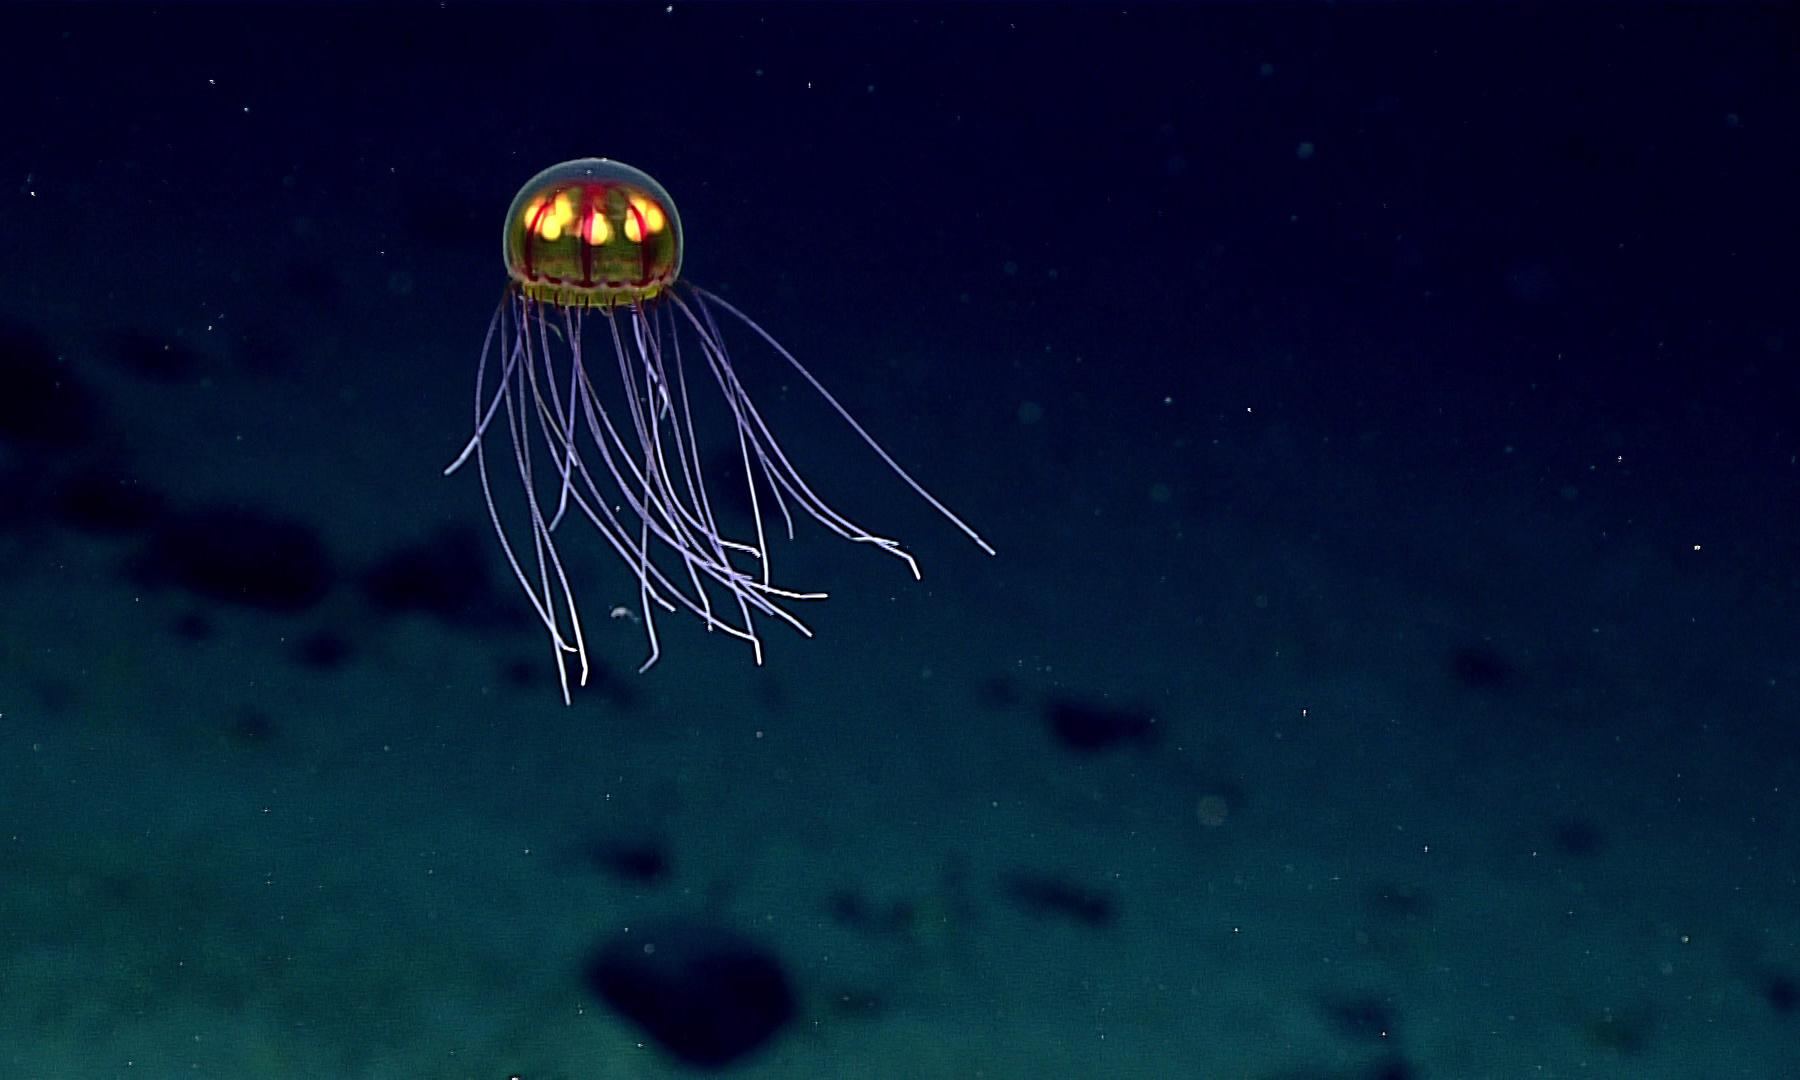 The Guardian view on deep sea exploration: murky waters ahead